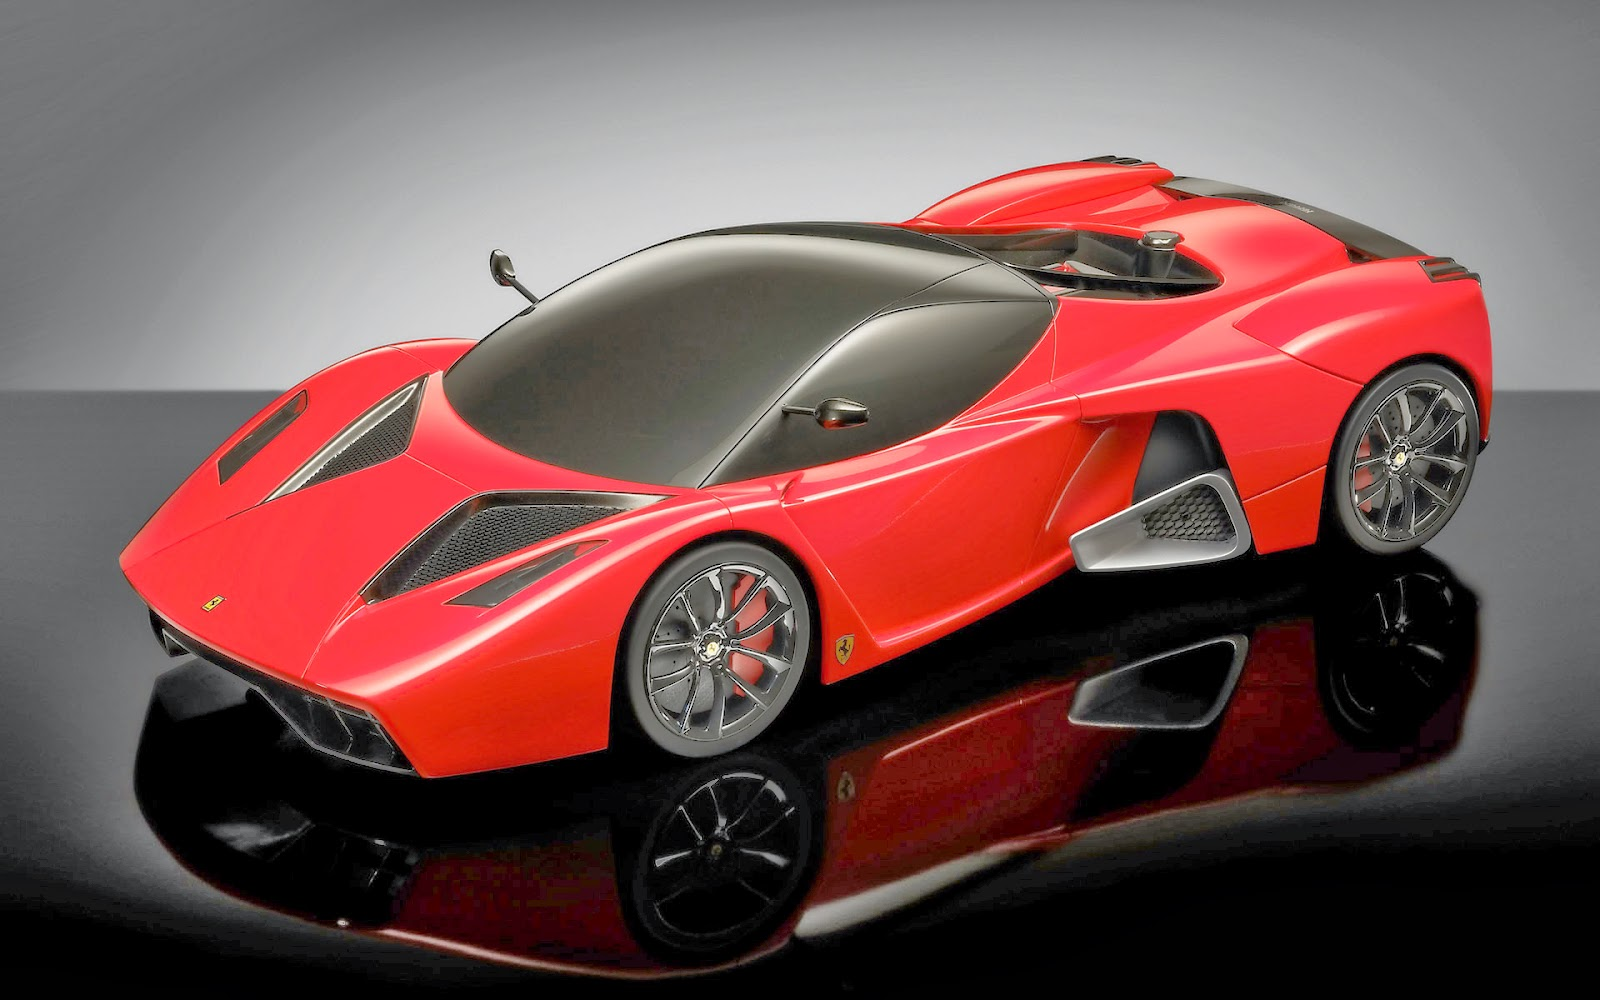 Lovable Images Ferrari Car HD Pictures Free Download